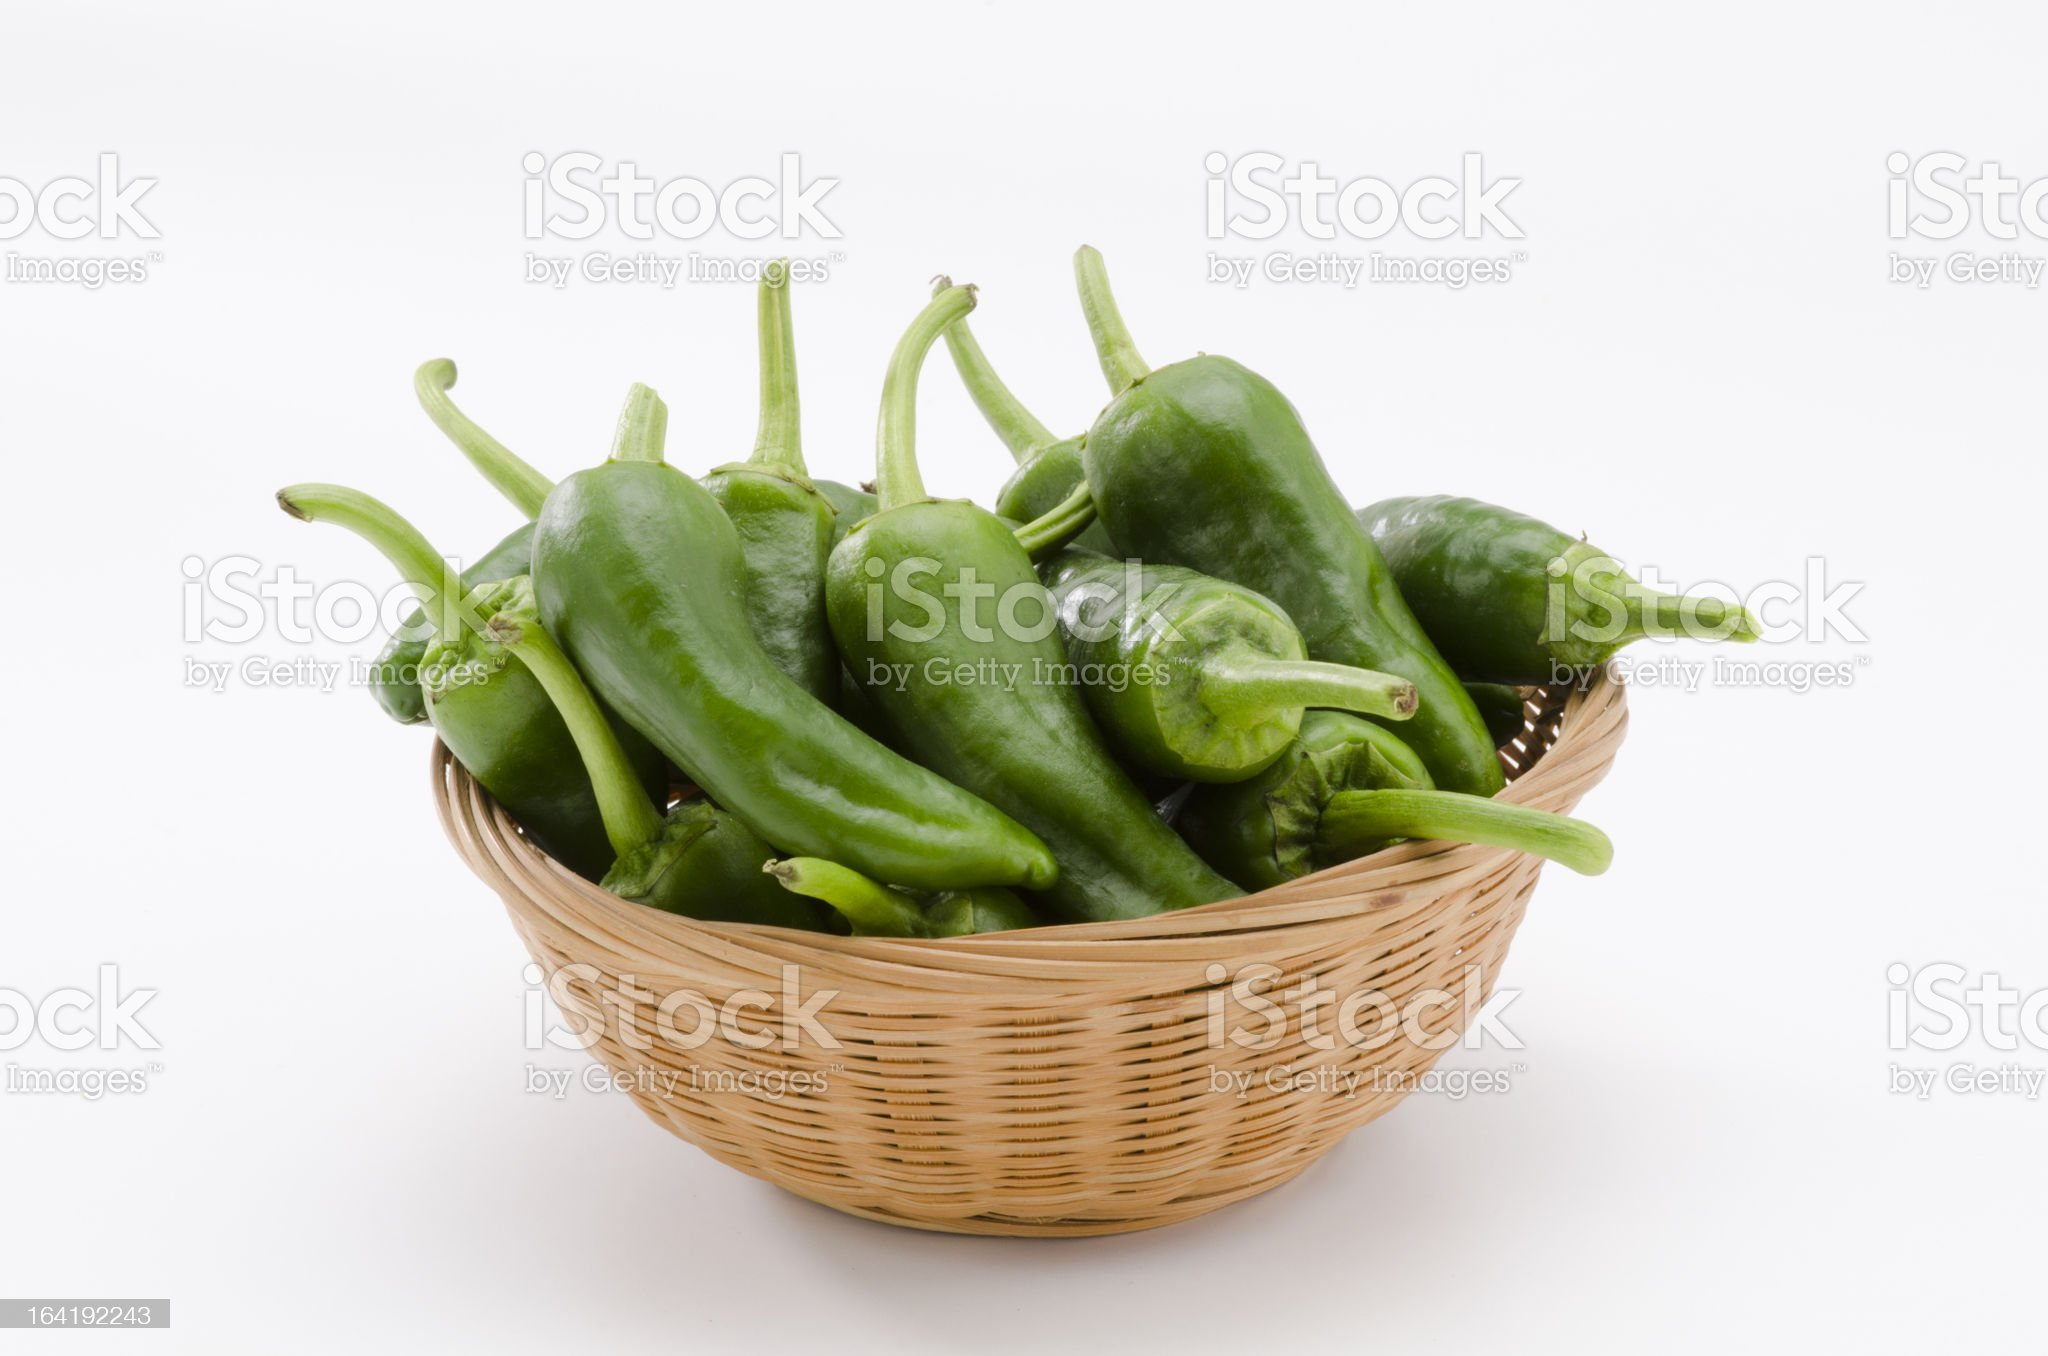 Green peppers. Pimientos del Padron. royalty-free stock photo